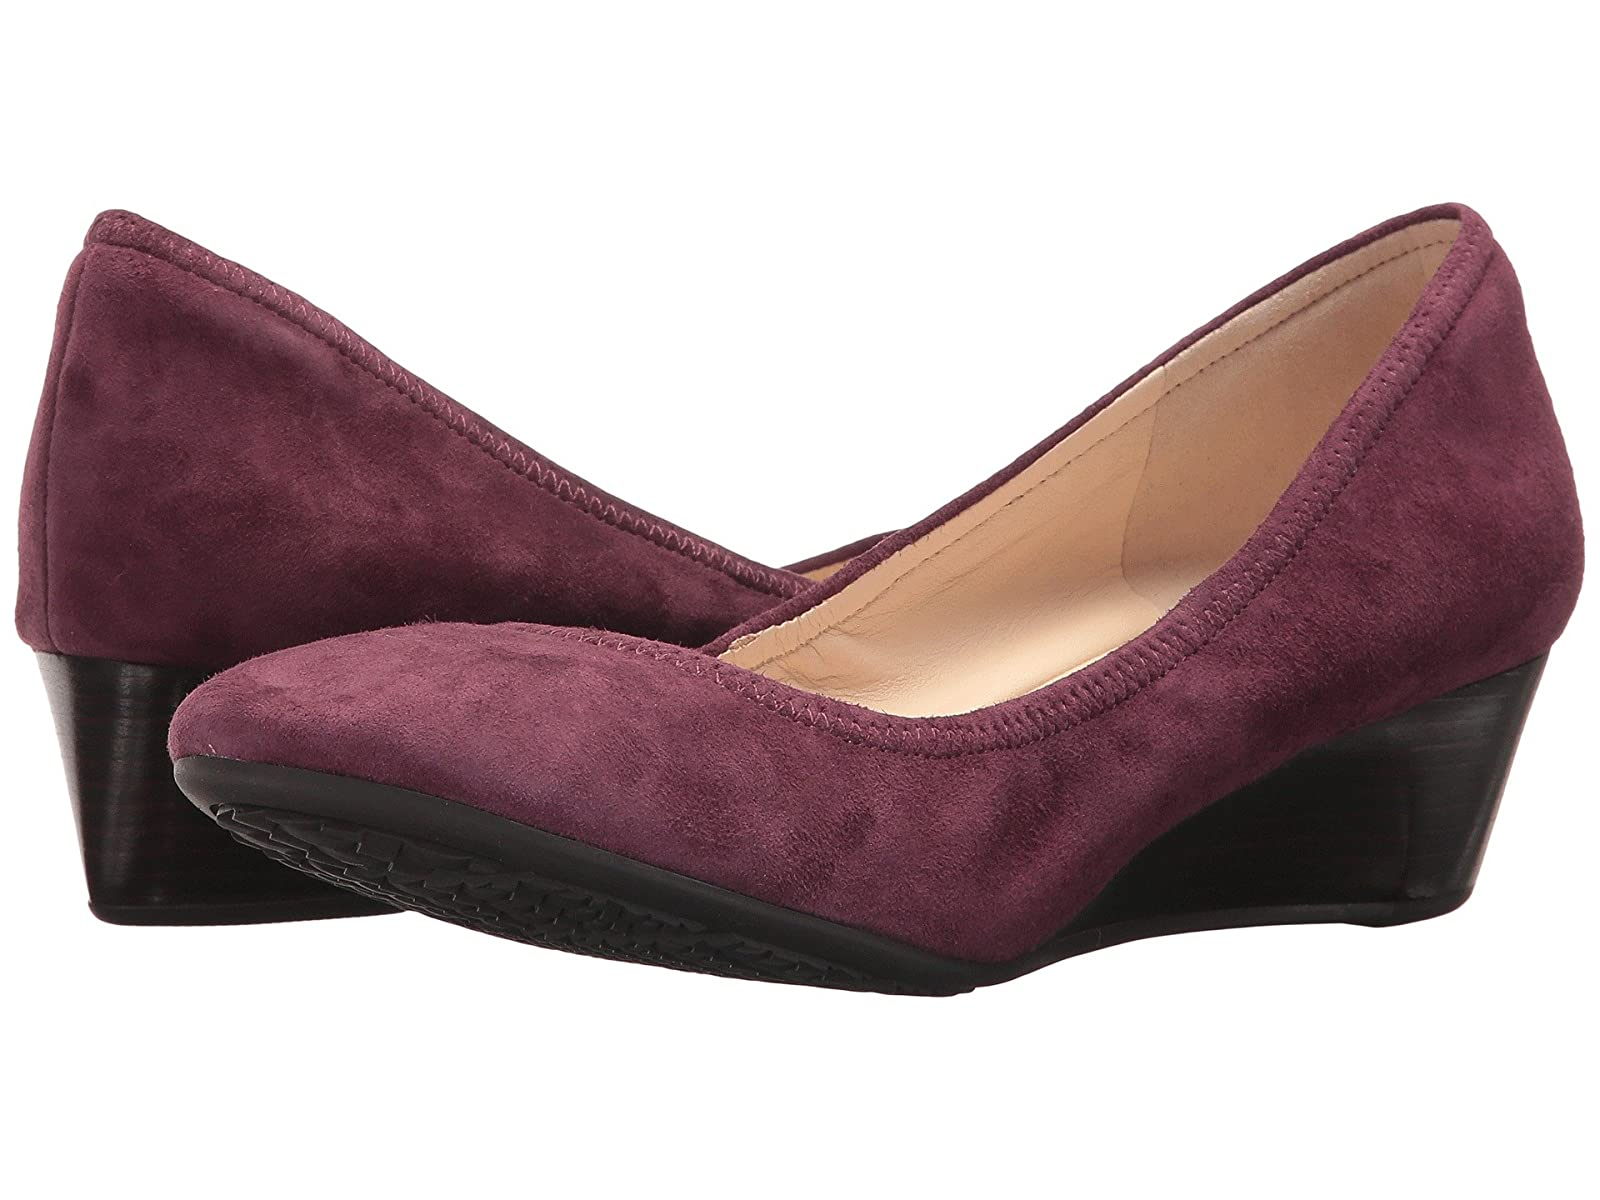 Cole Haan Sadie Wedge 40mmCheap and distinctive eye-catching shoes